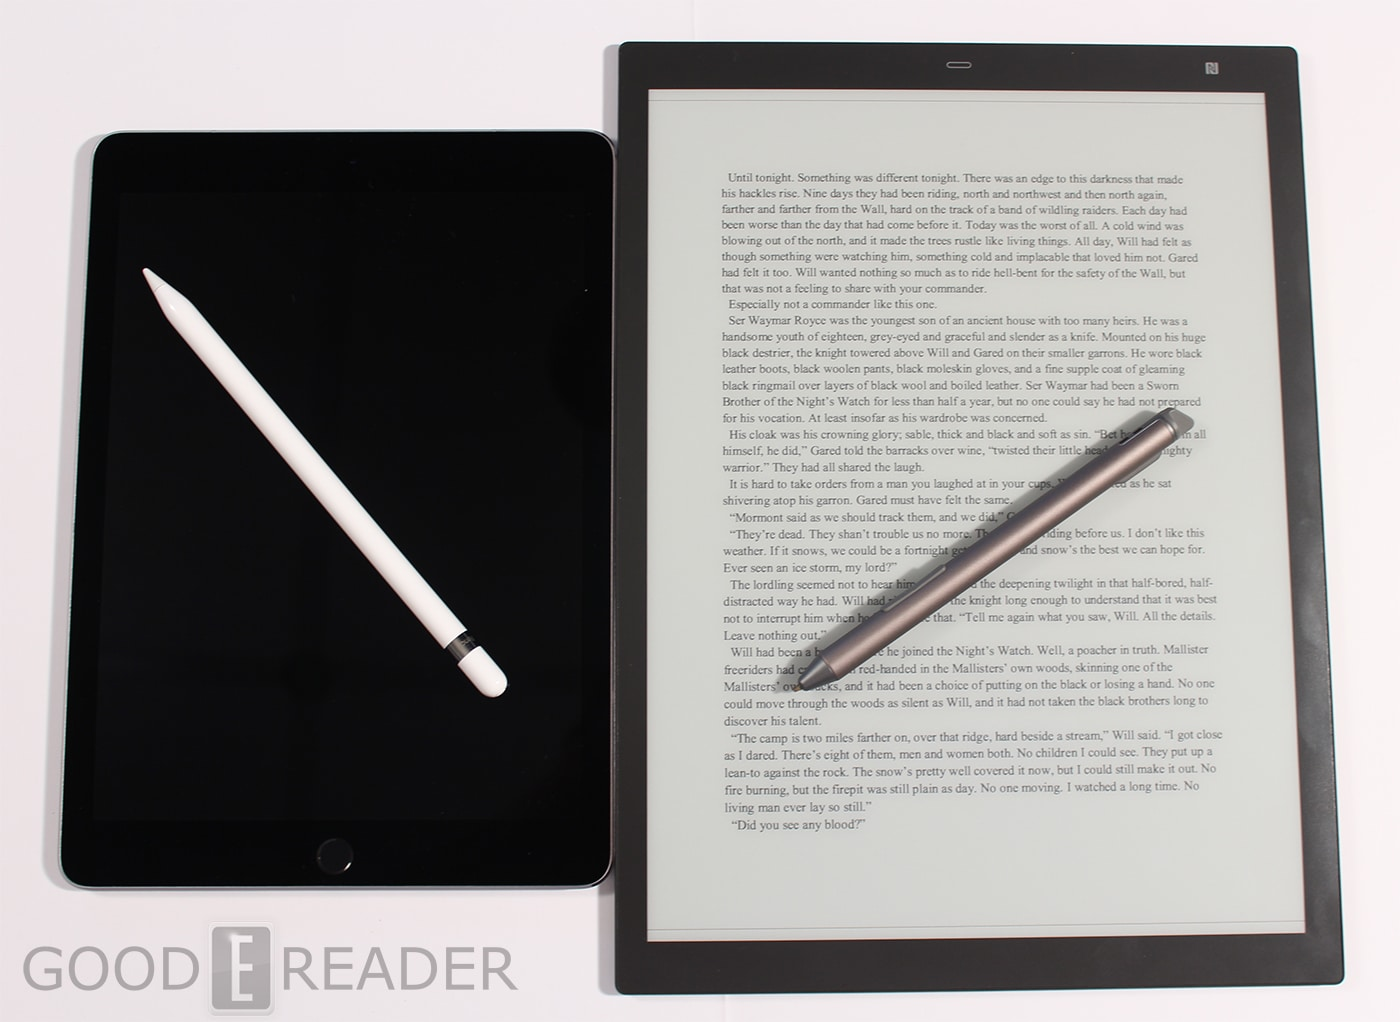 Kindle Vs Sony Reader: Apple IPad Pro With Apple Pencil Vs Sony DPT-RP1 With Stylus